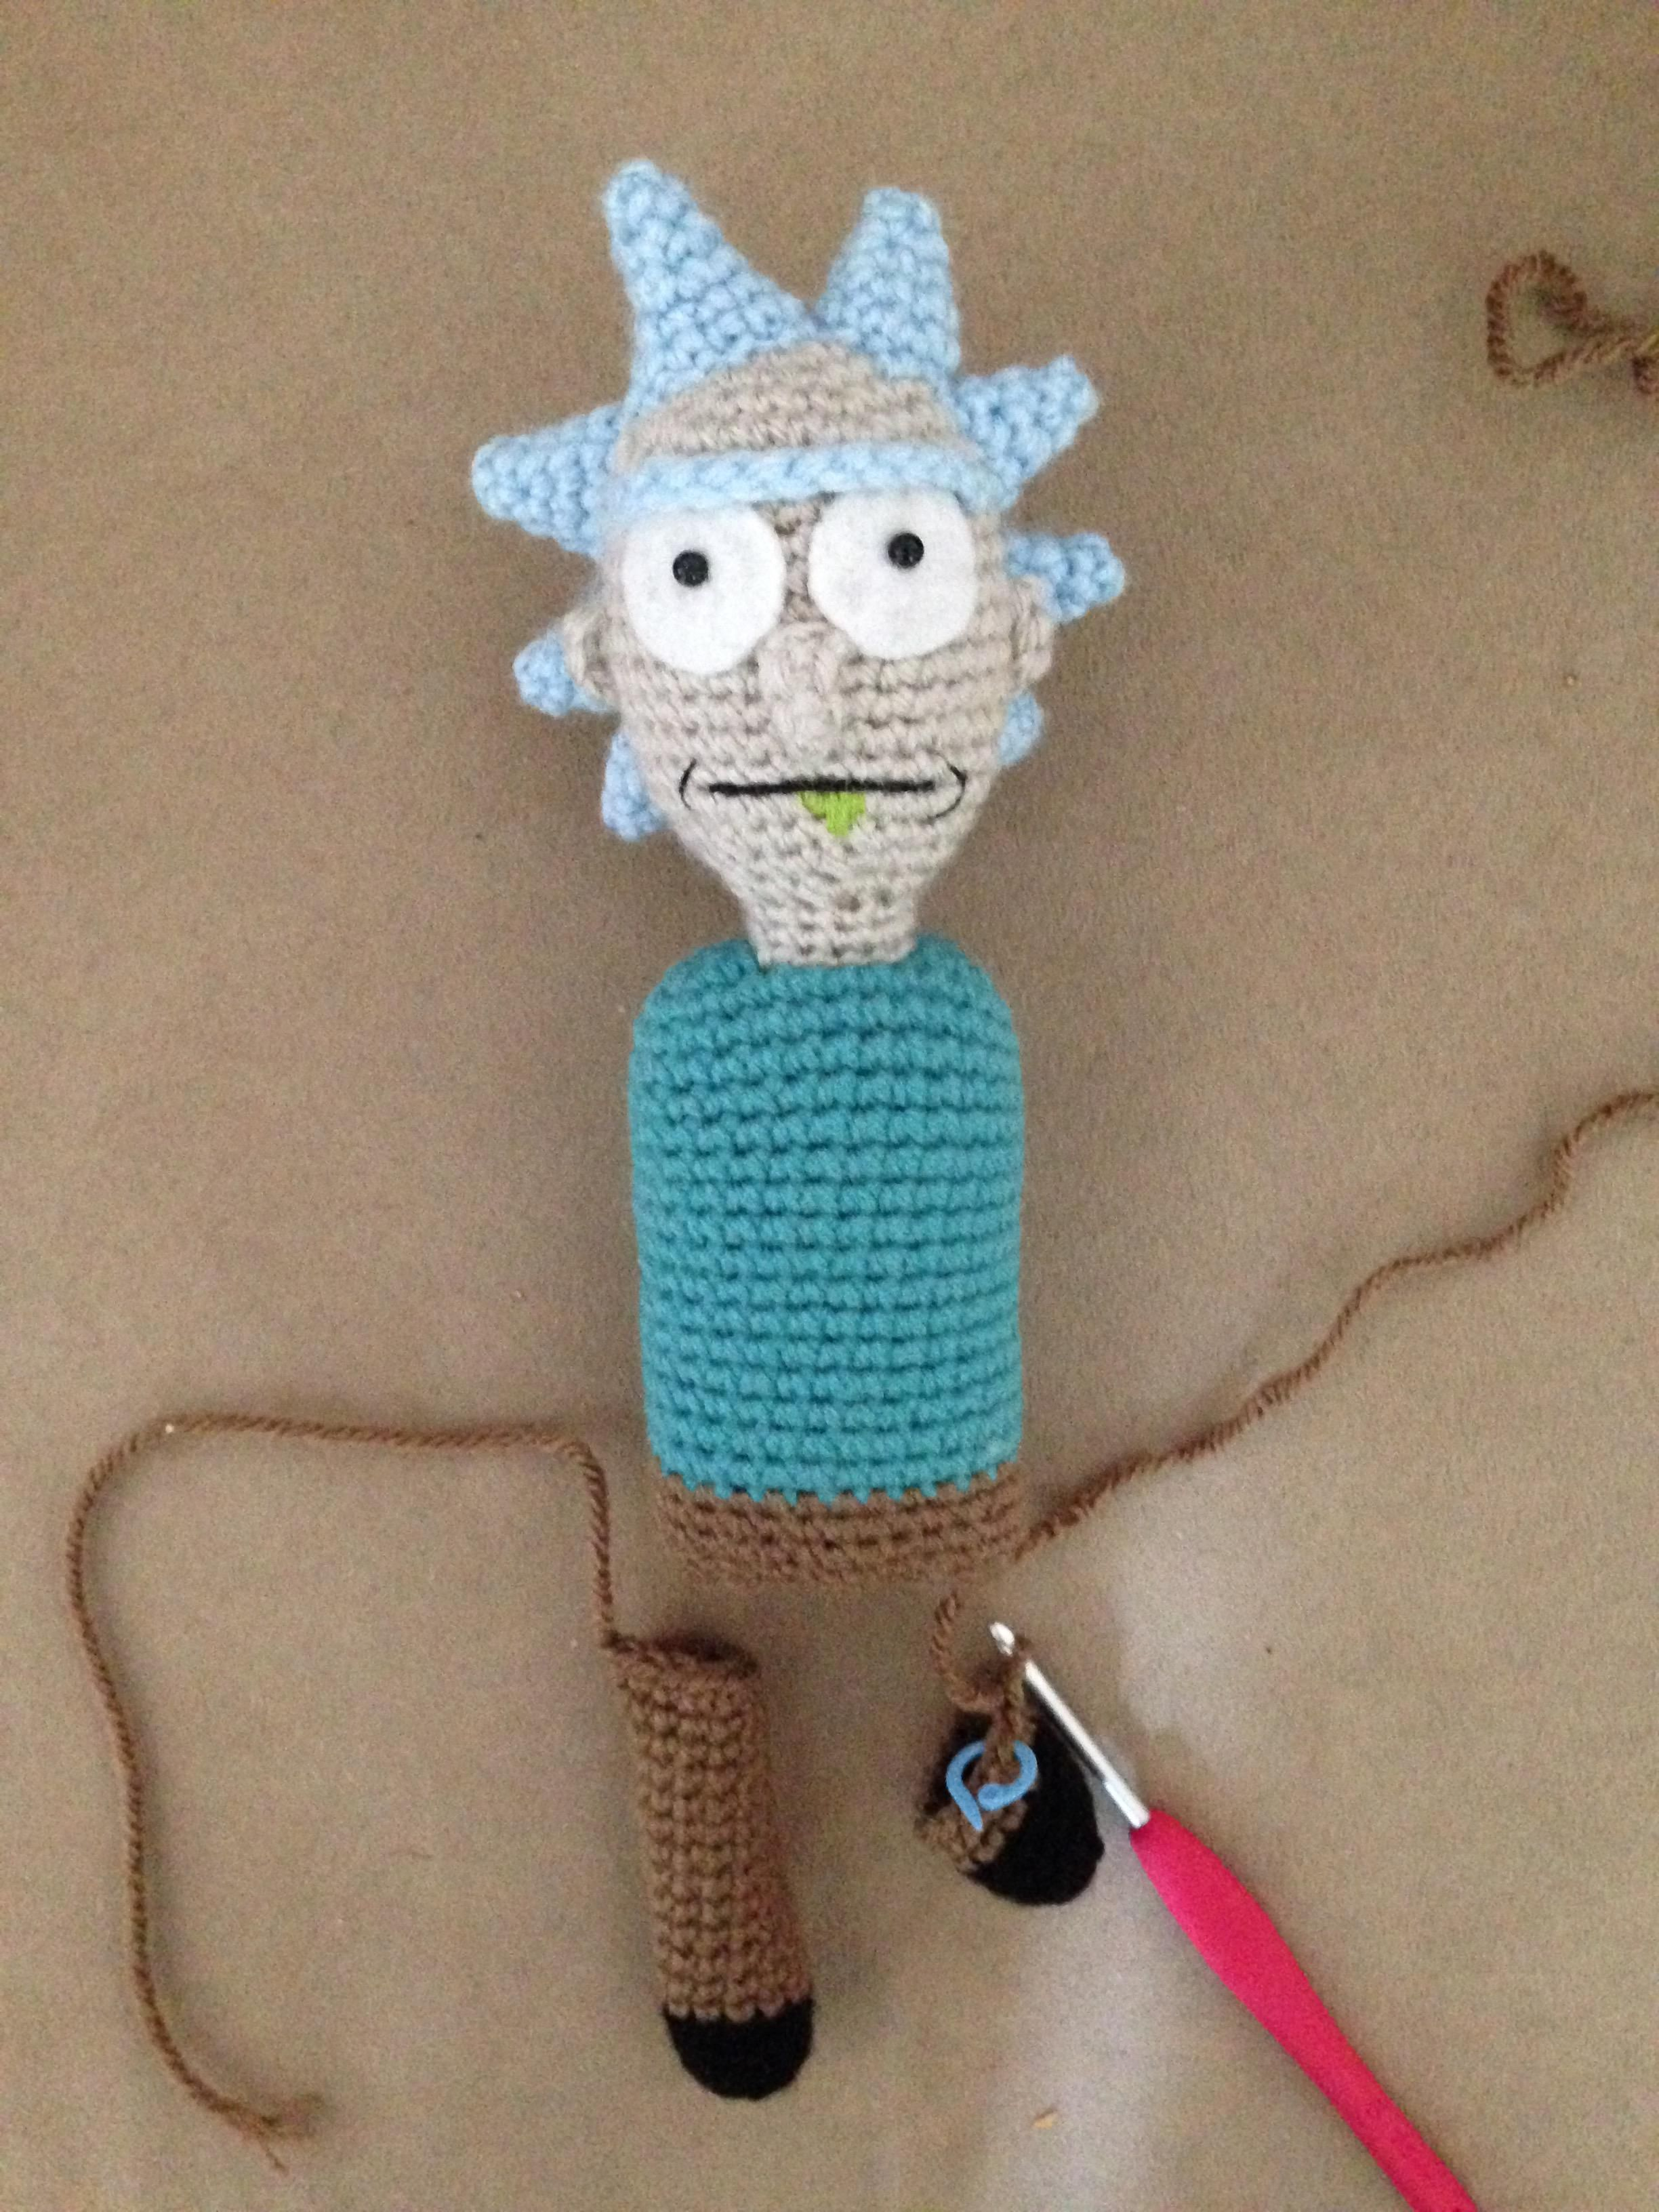 1000 images about crochet thread mini amp micro on pinterest - Crocheted Rick From Rick And Morty It S Tiny Rick Bitches Pinterest Crochet Amigurumi And Crocheted Toys